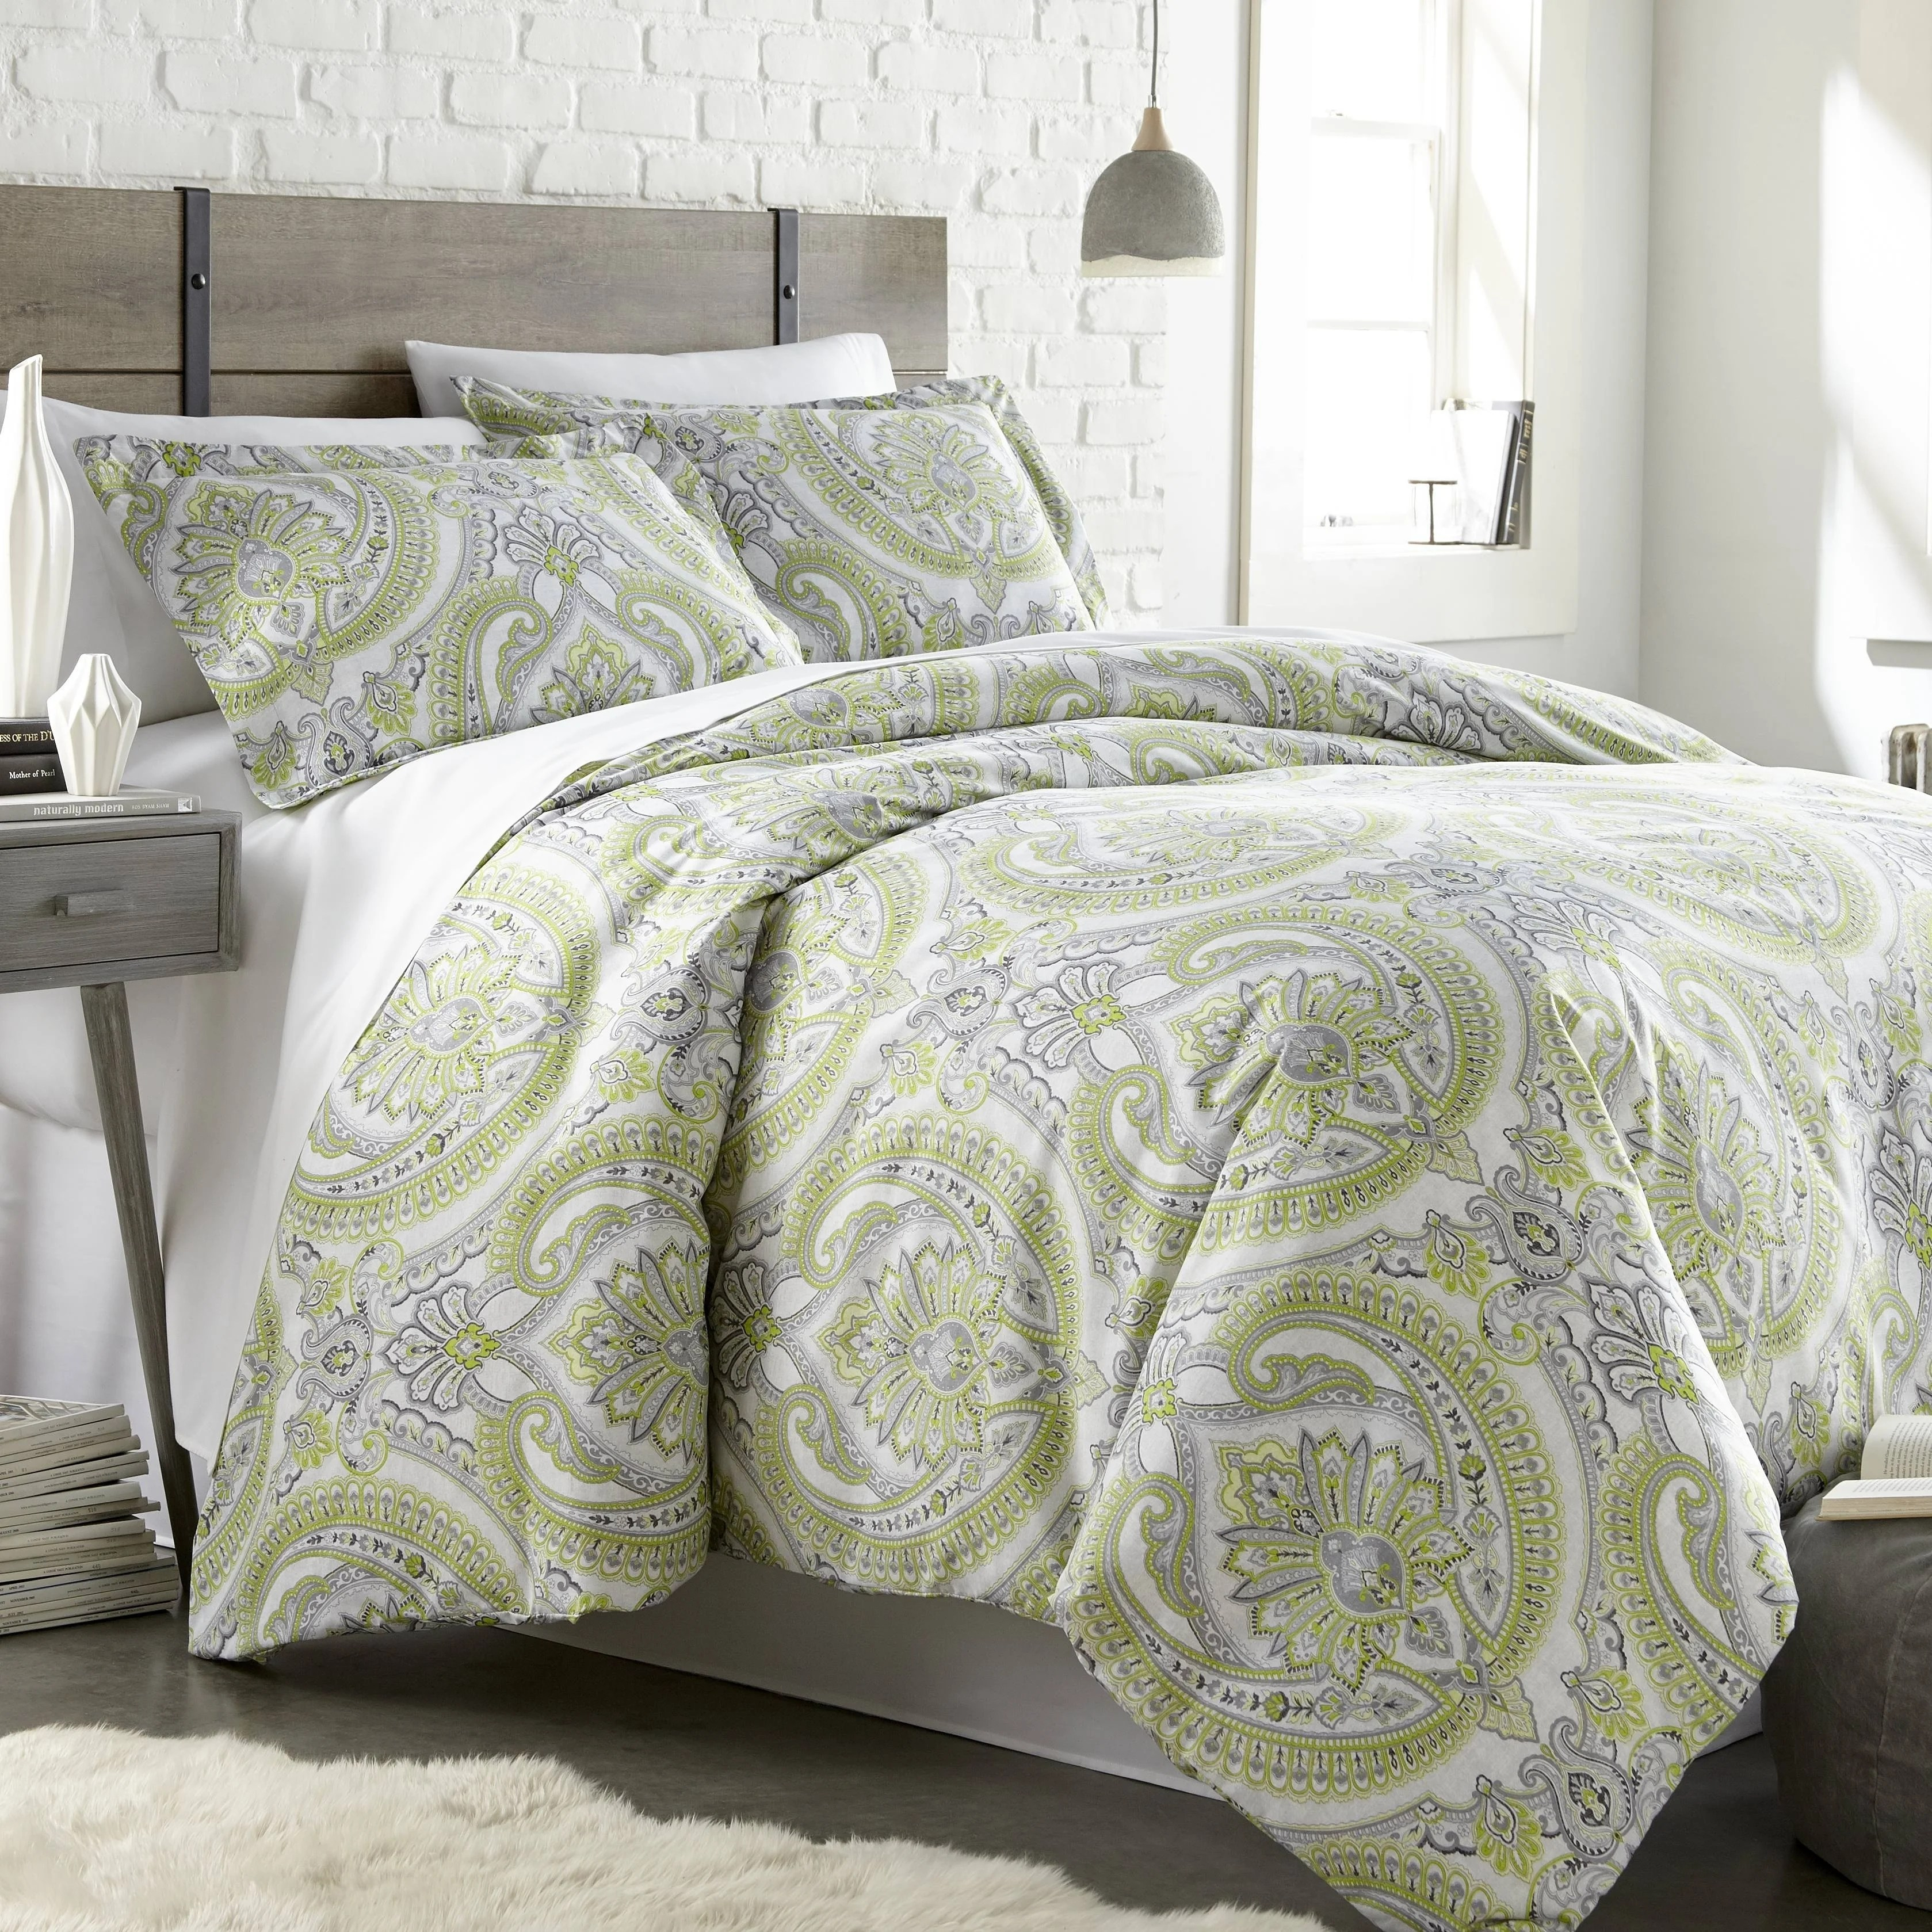 Where To Buy Nice Duvet Covers Pure Melody Classic Paisley Duvet Cover And Sham Set